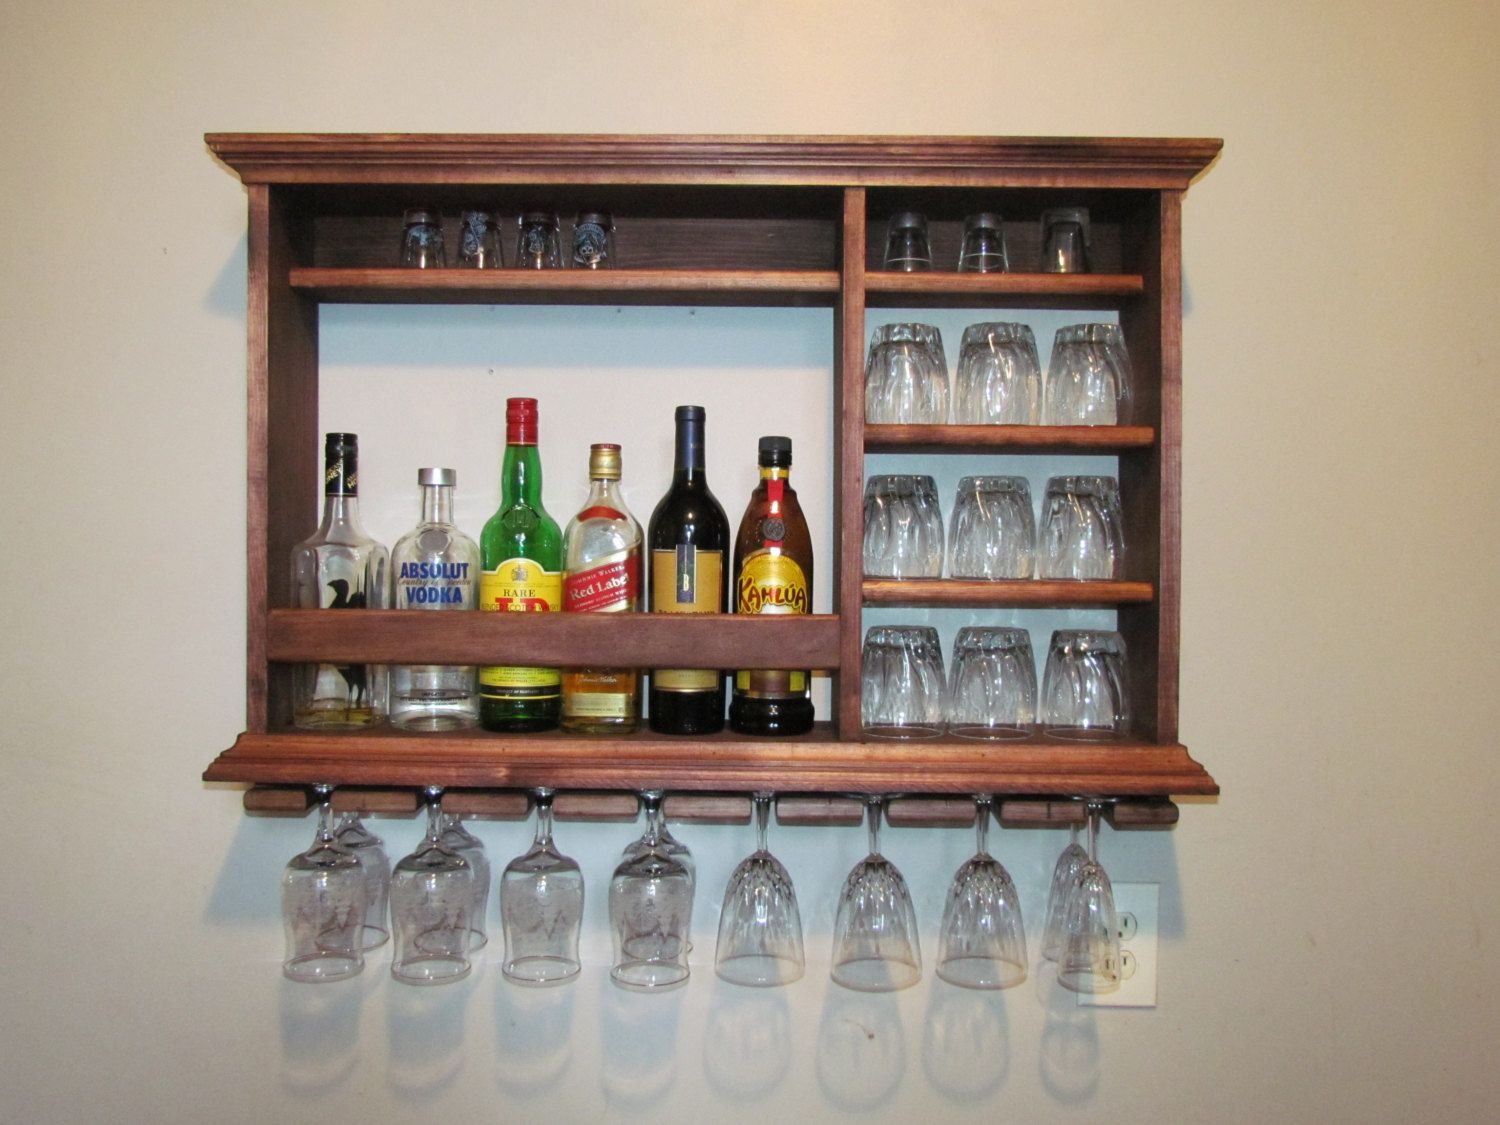 Uncategorized Mini Liquor Cabinet image result for how to build mini bar with fridge man cave espresso stain liquor cabinet wine rack x minimalist style